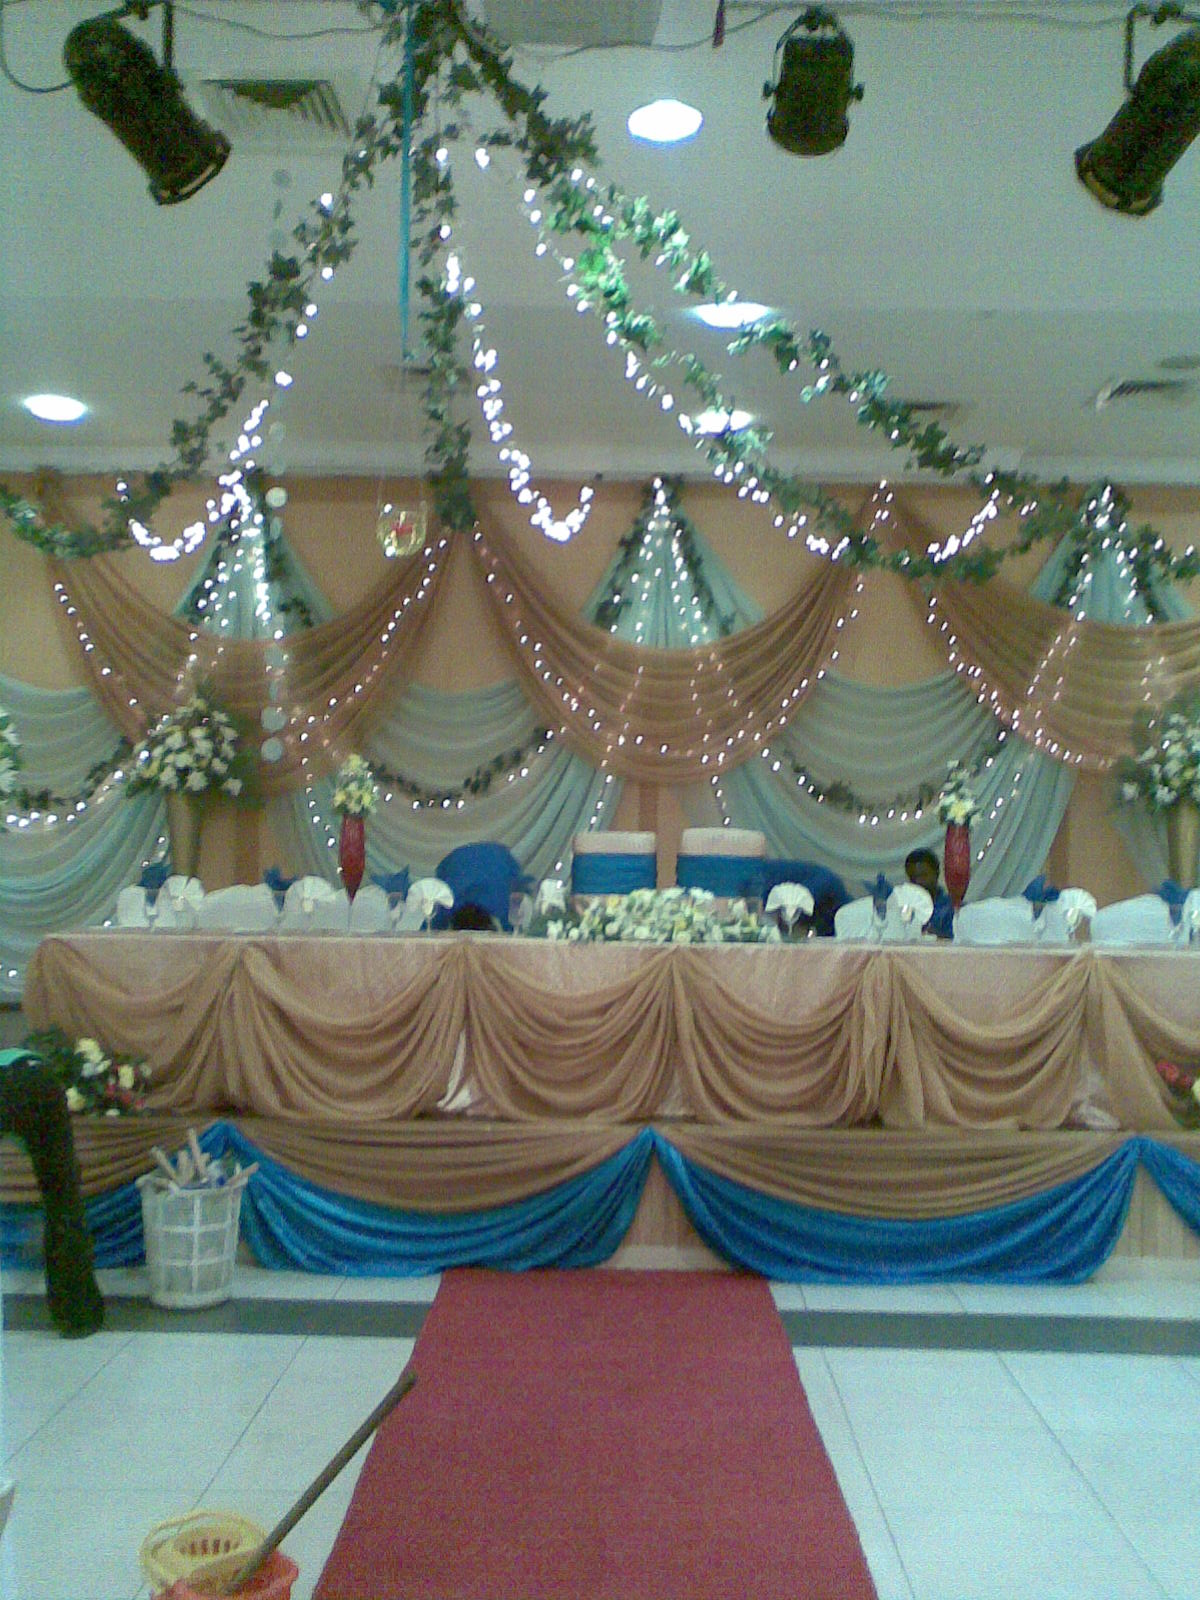 decoration decorations nigeria event exquisite interior kings independence marking gold